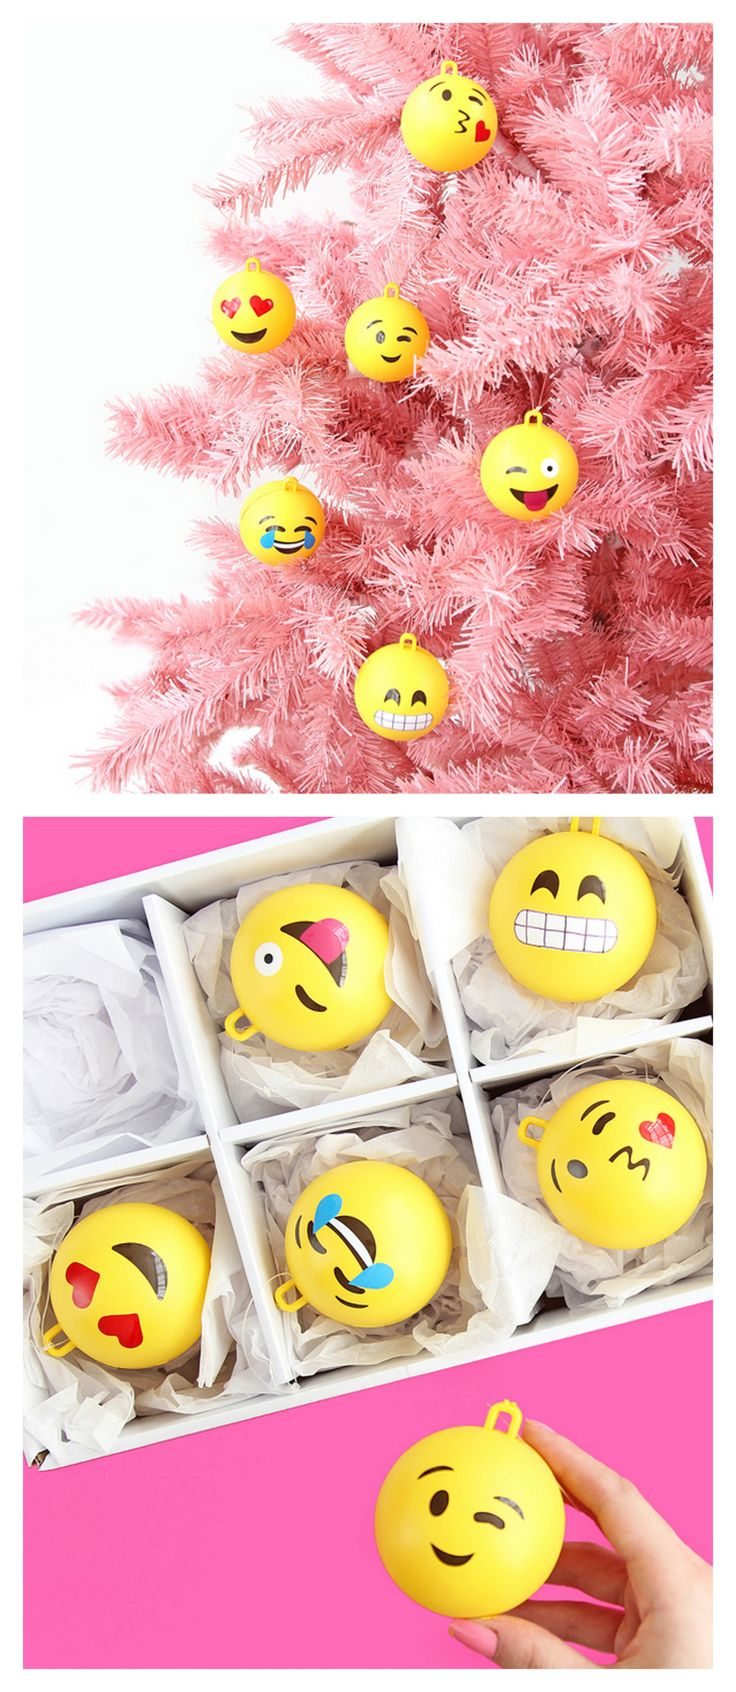 Plastic ornament hangers - Plastic Craft Balls A Diy Emoji Ornament Tutorial From A Subtle Revelry Make These Fun Diy Emoji Ornaments With Clear Ornaments Vinyl And Spray Paint